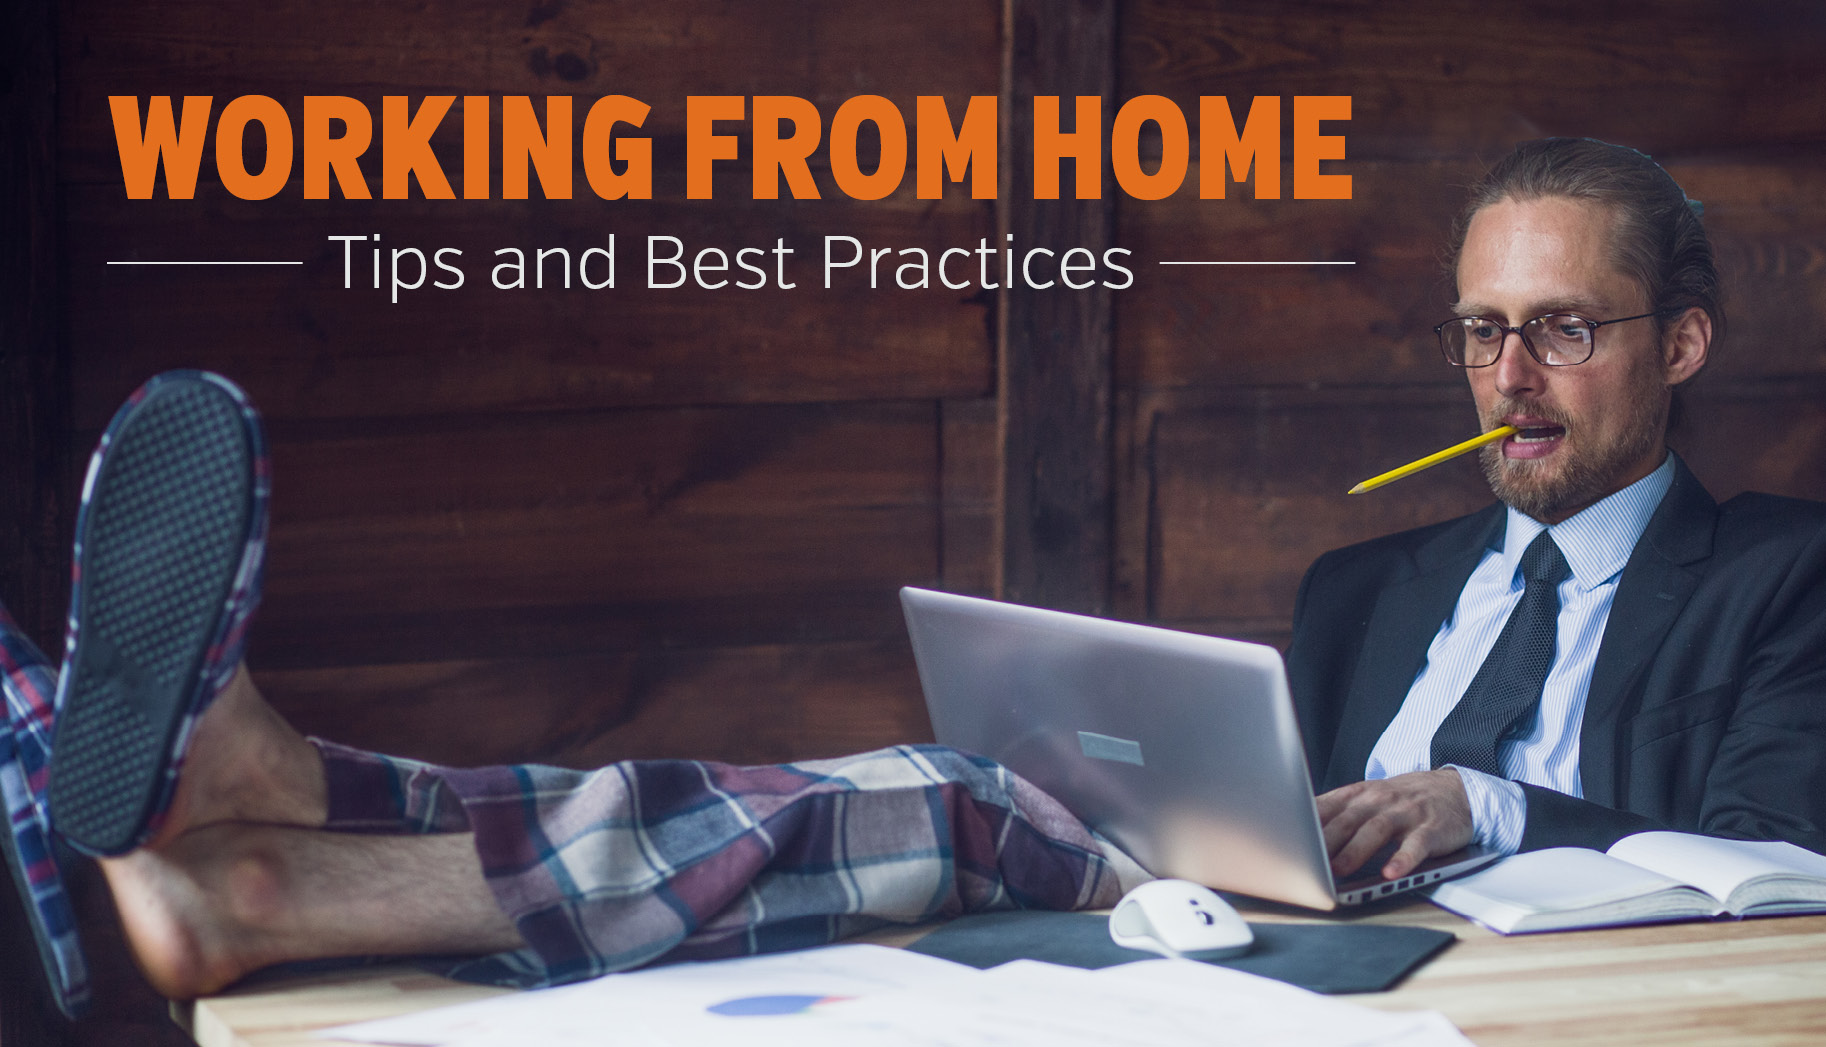 Personal Best Practices to Effectively Work from Home